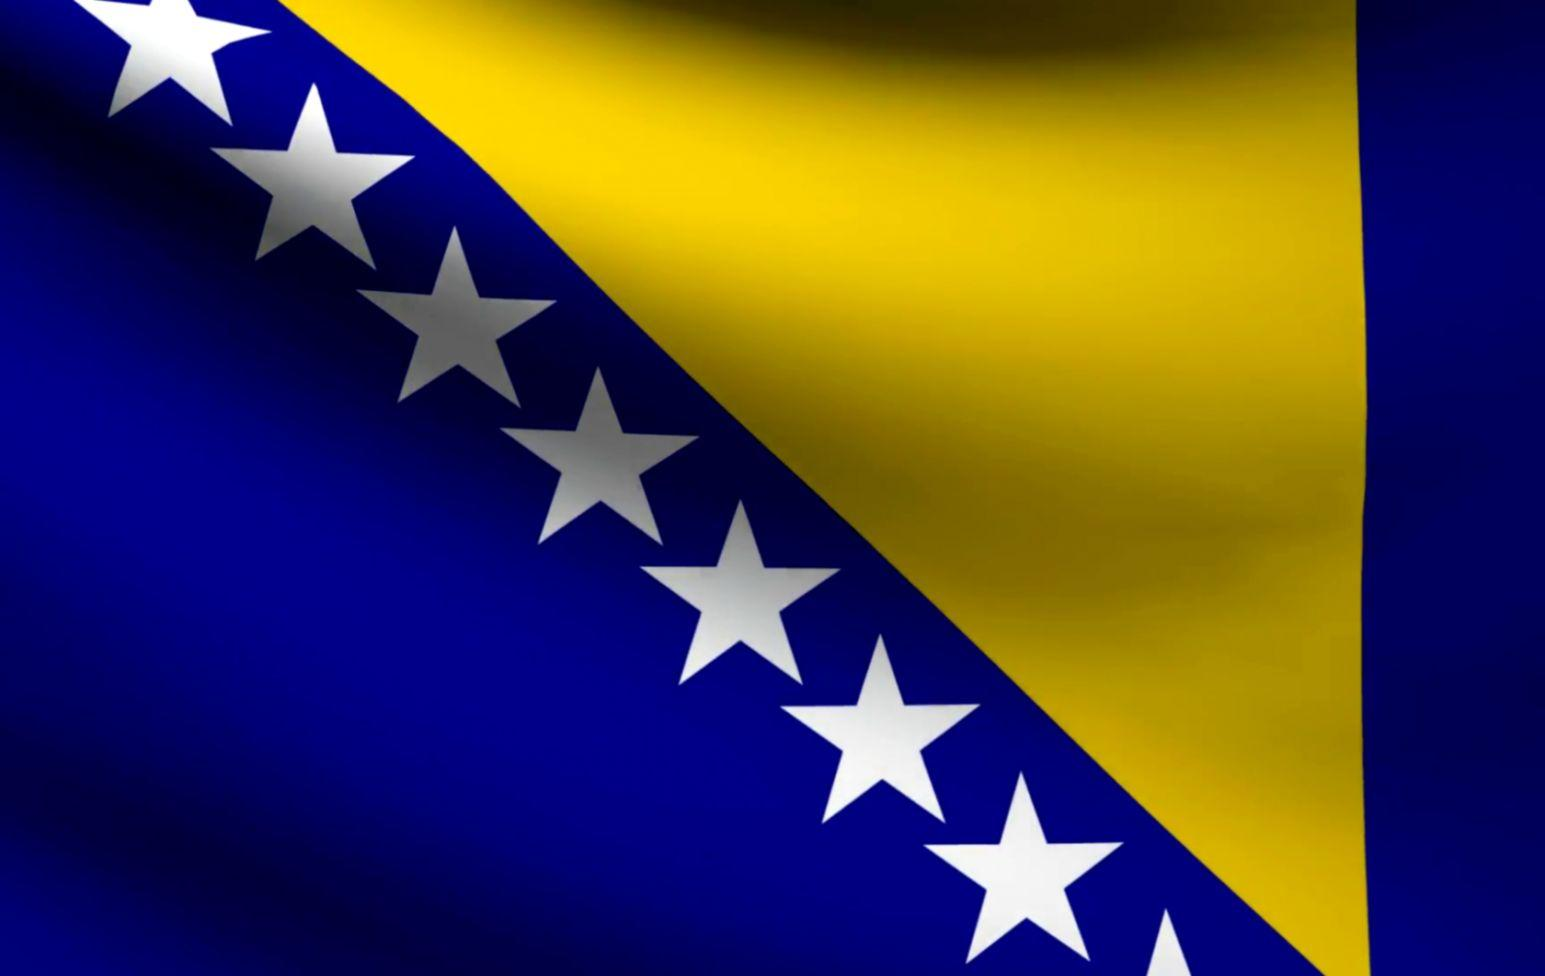 Bosnia And Herzegovina Countries Flag Artwork Wallpaper | wimwauman